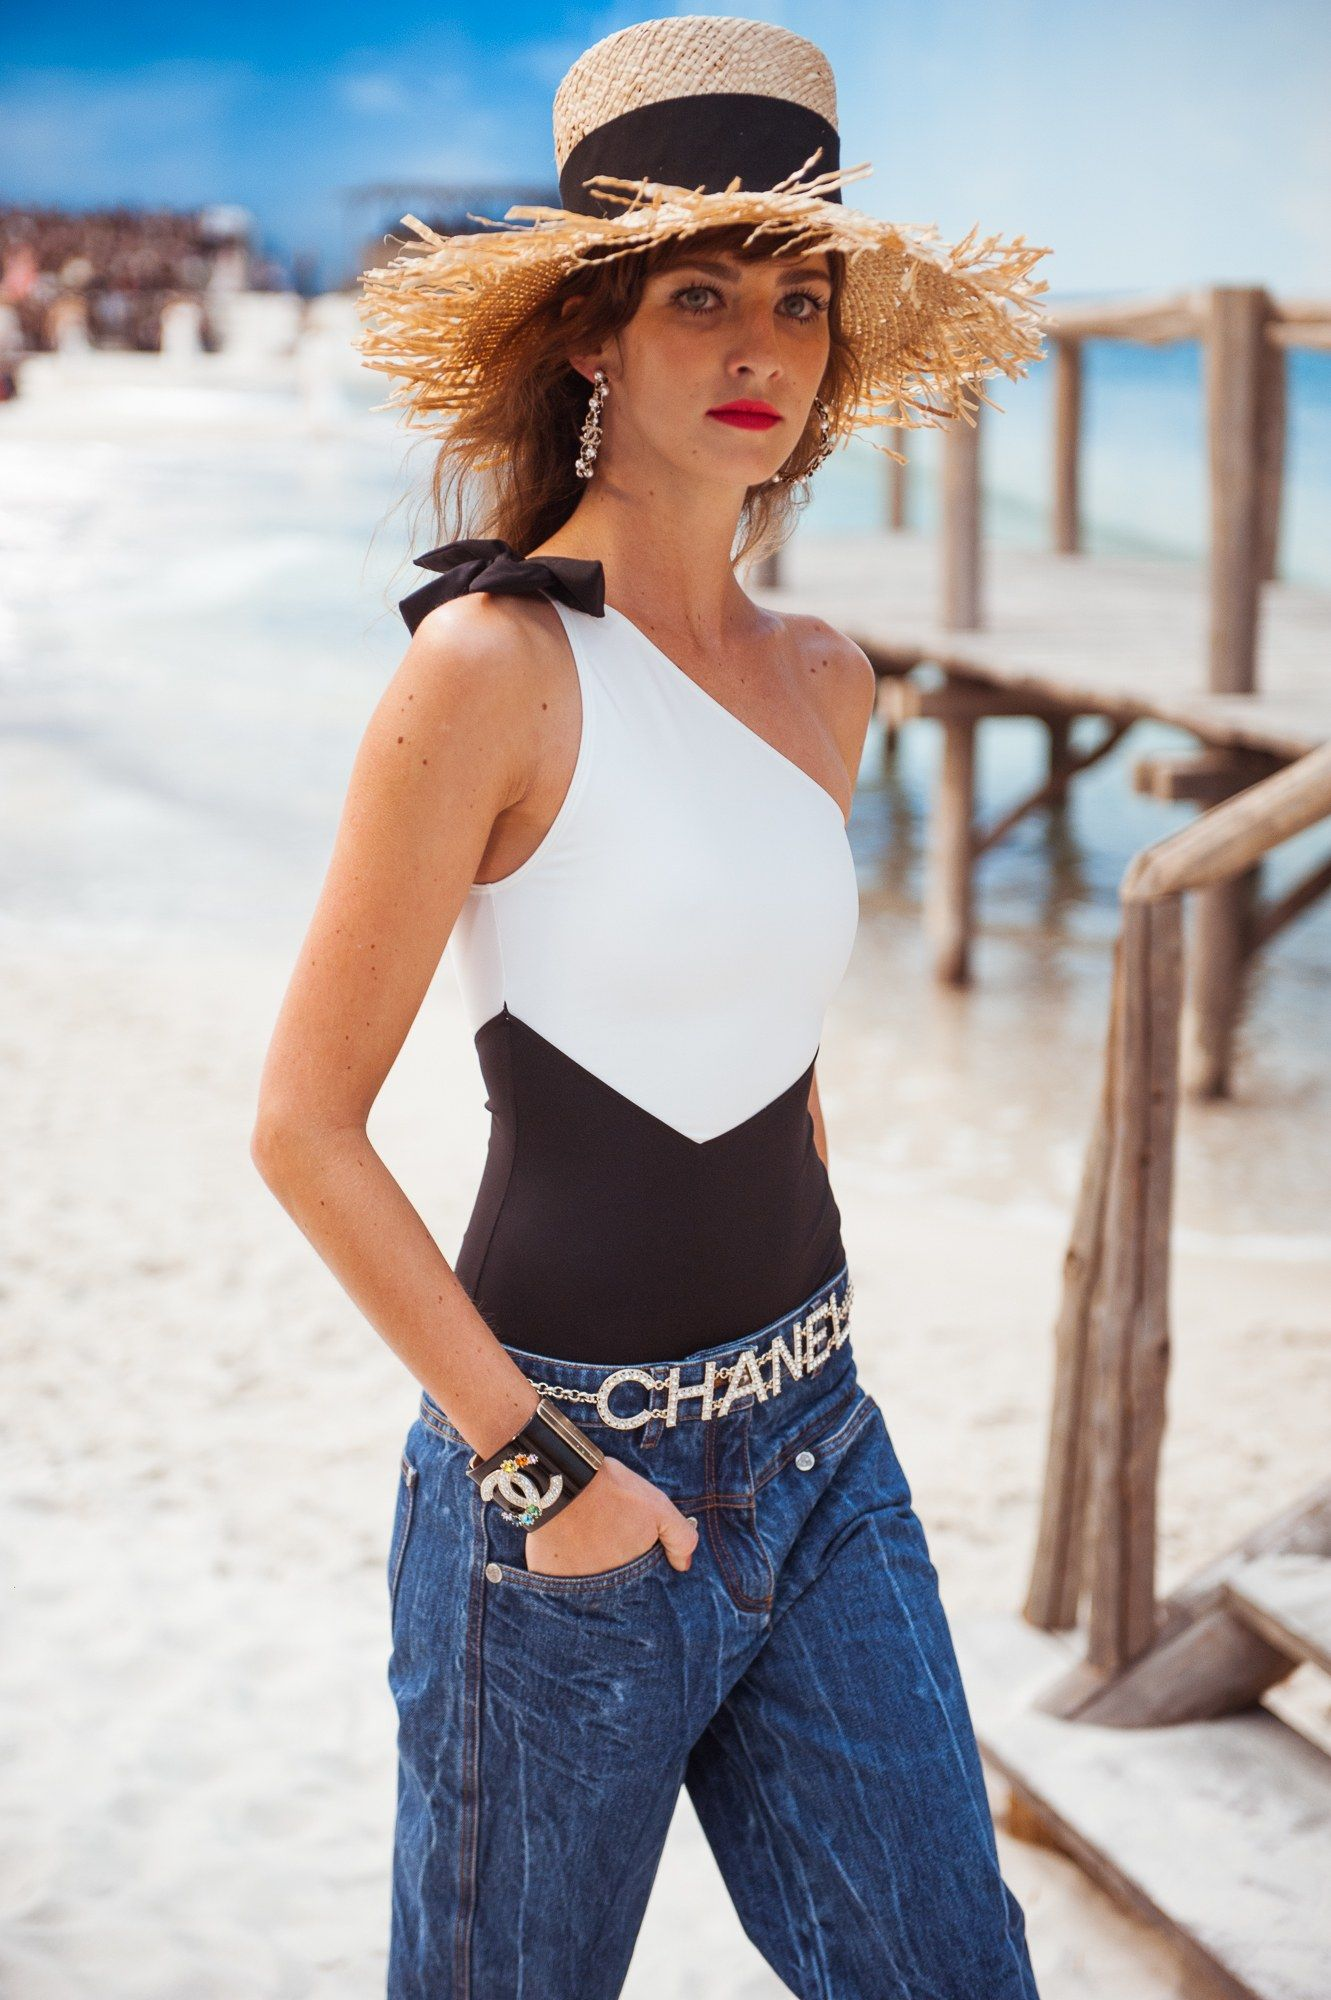 b6ef40801238 Chanel Brought the Beach to Paris for its Spring 2019 Show